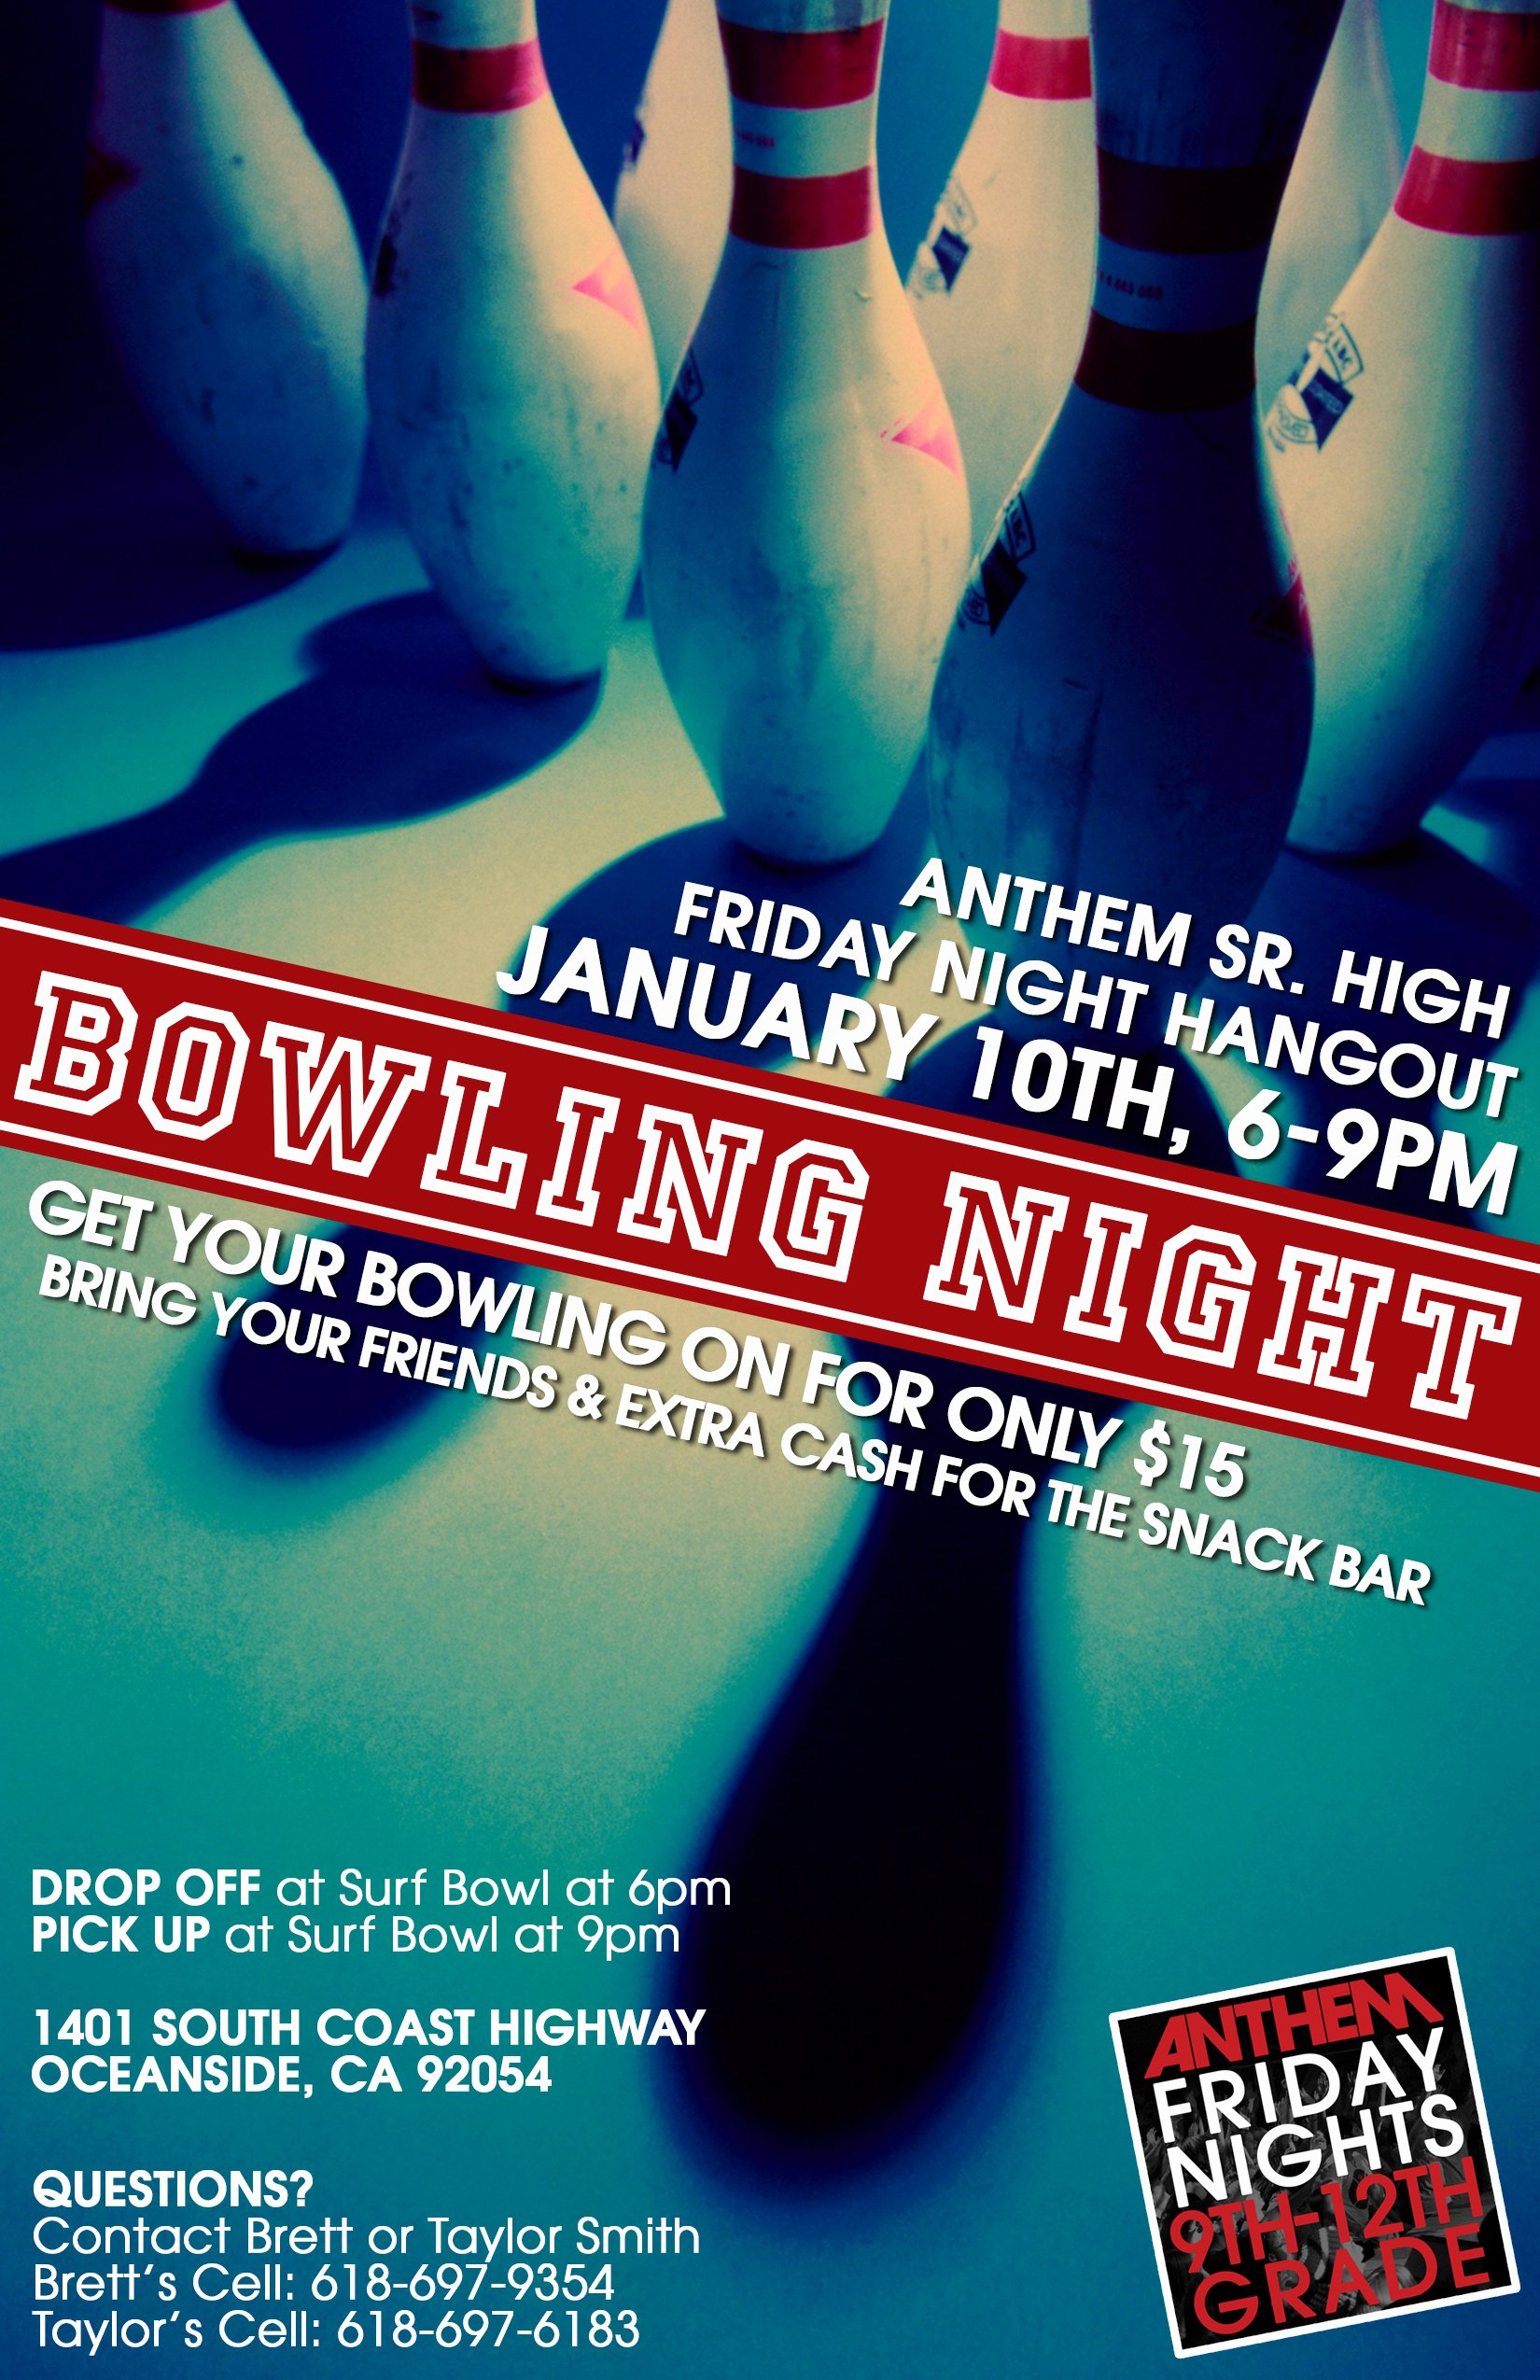 Bowling Flyer Template Free Awesome Bowling Flyer Template Free Portablegasgrillweber